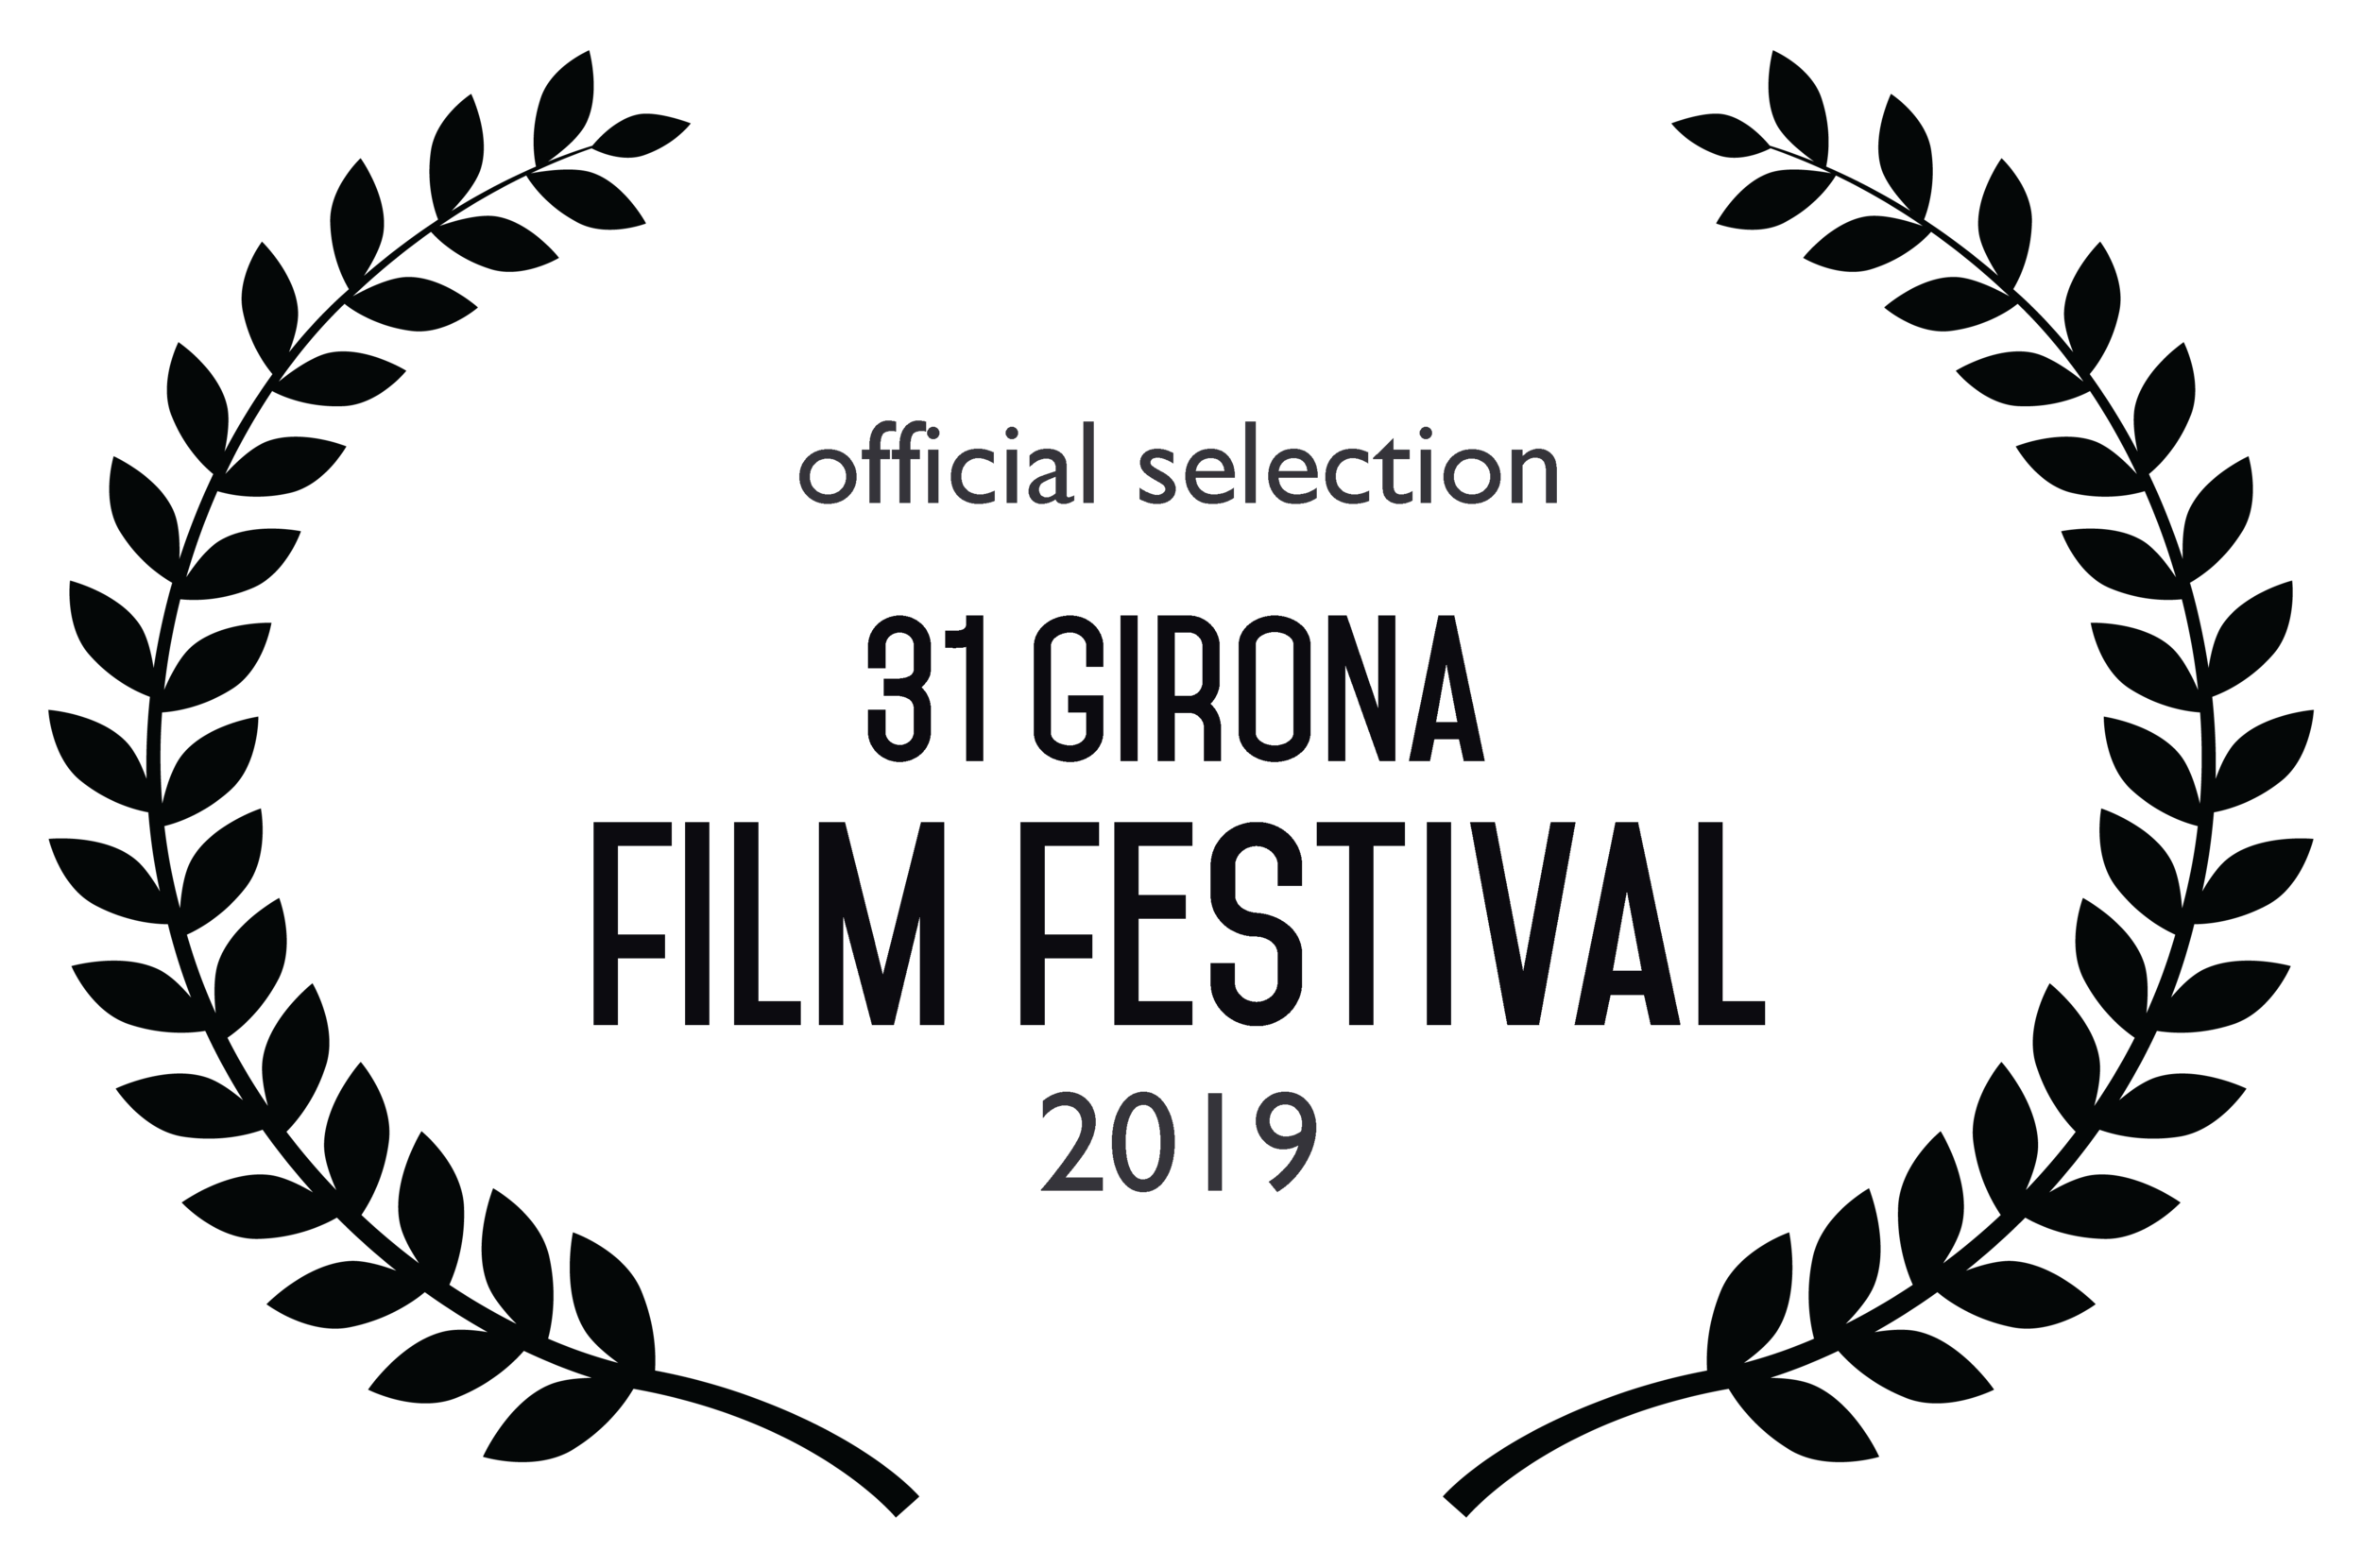 OFFICIALSELECTION-31GIRONAFILMFESTIVAL-2019_black.png